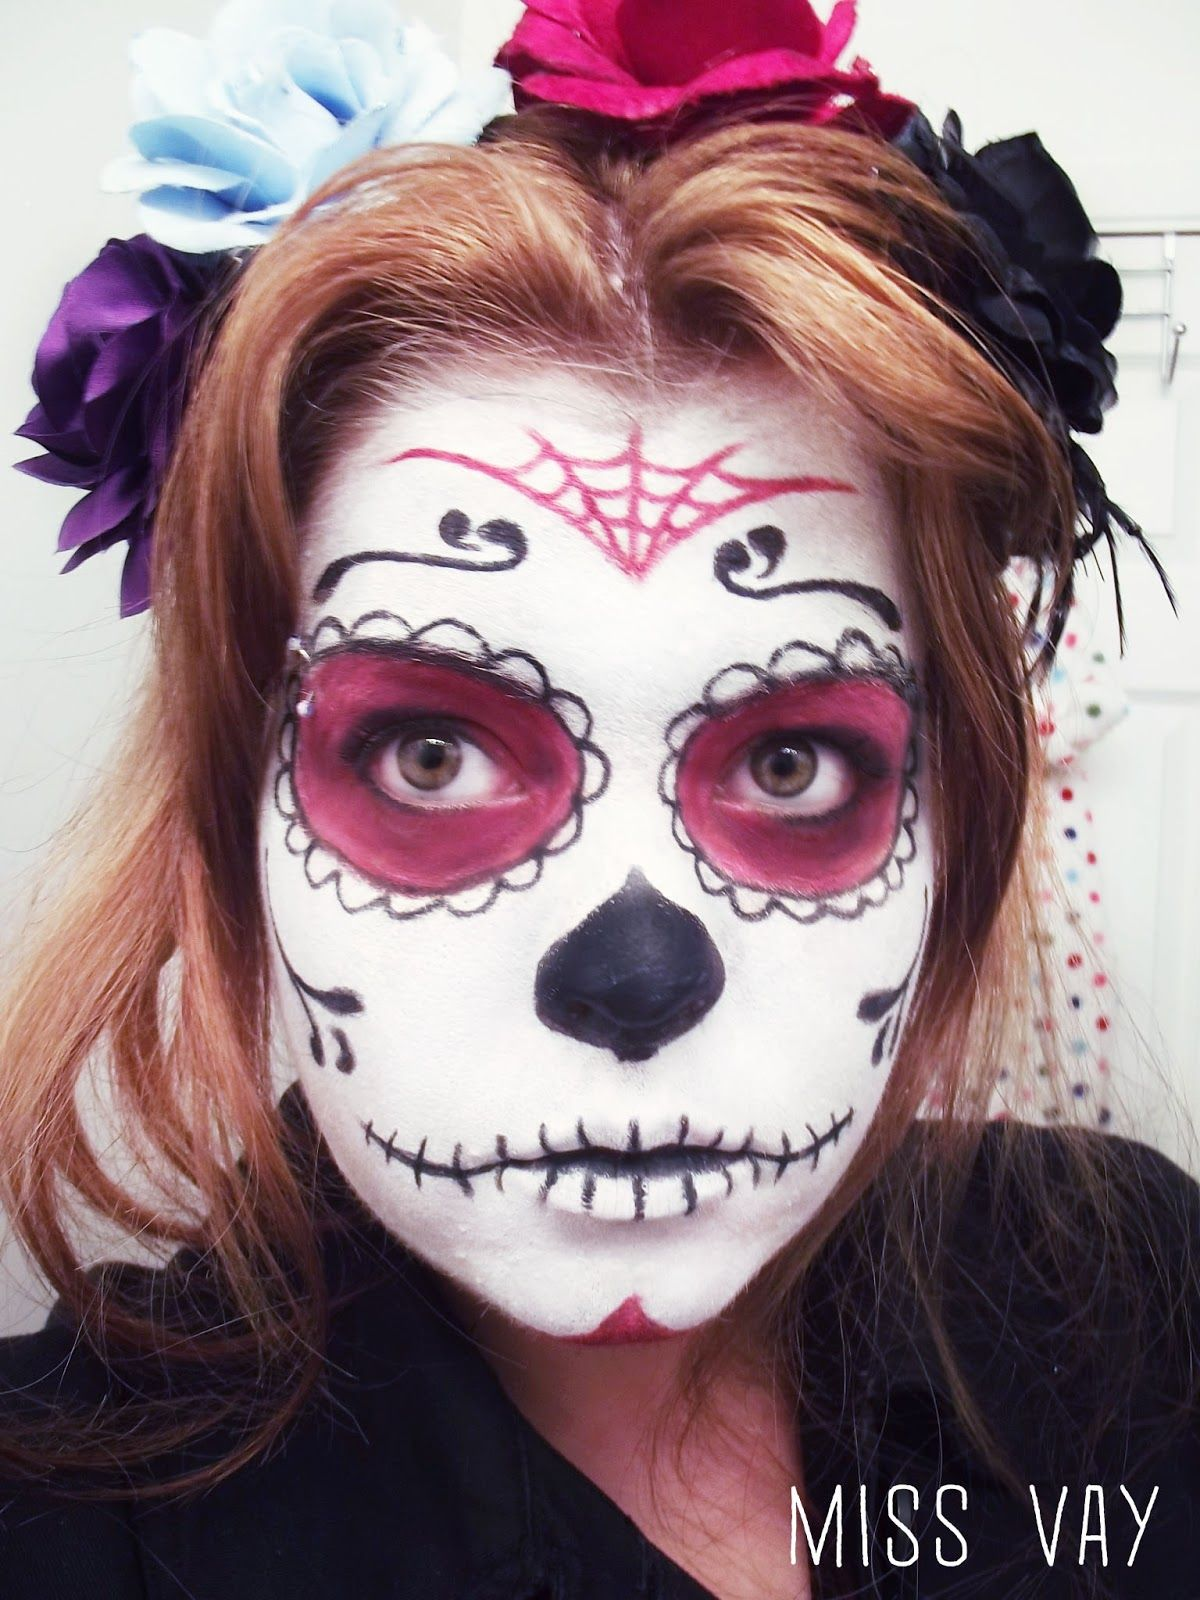 Tete de mort mexicaine maquillage recherche google maquillage mexicain pinterest - Maquillage squelette mexicain ...